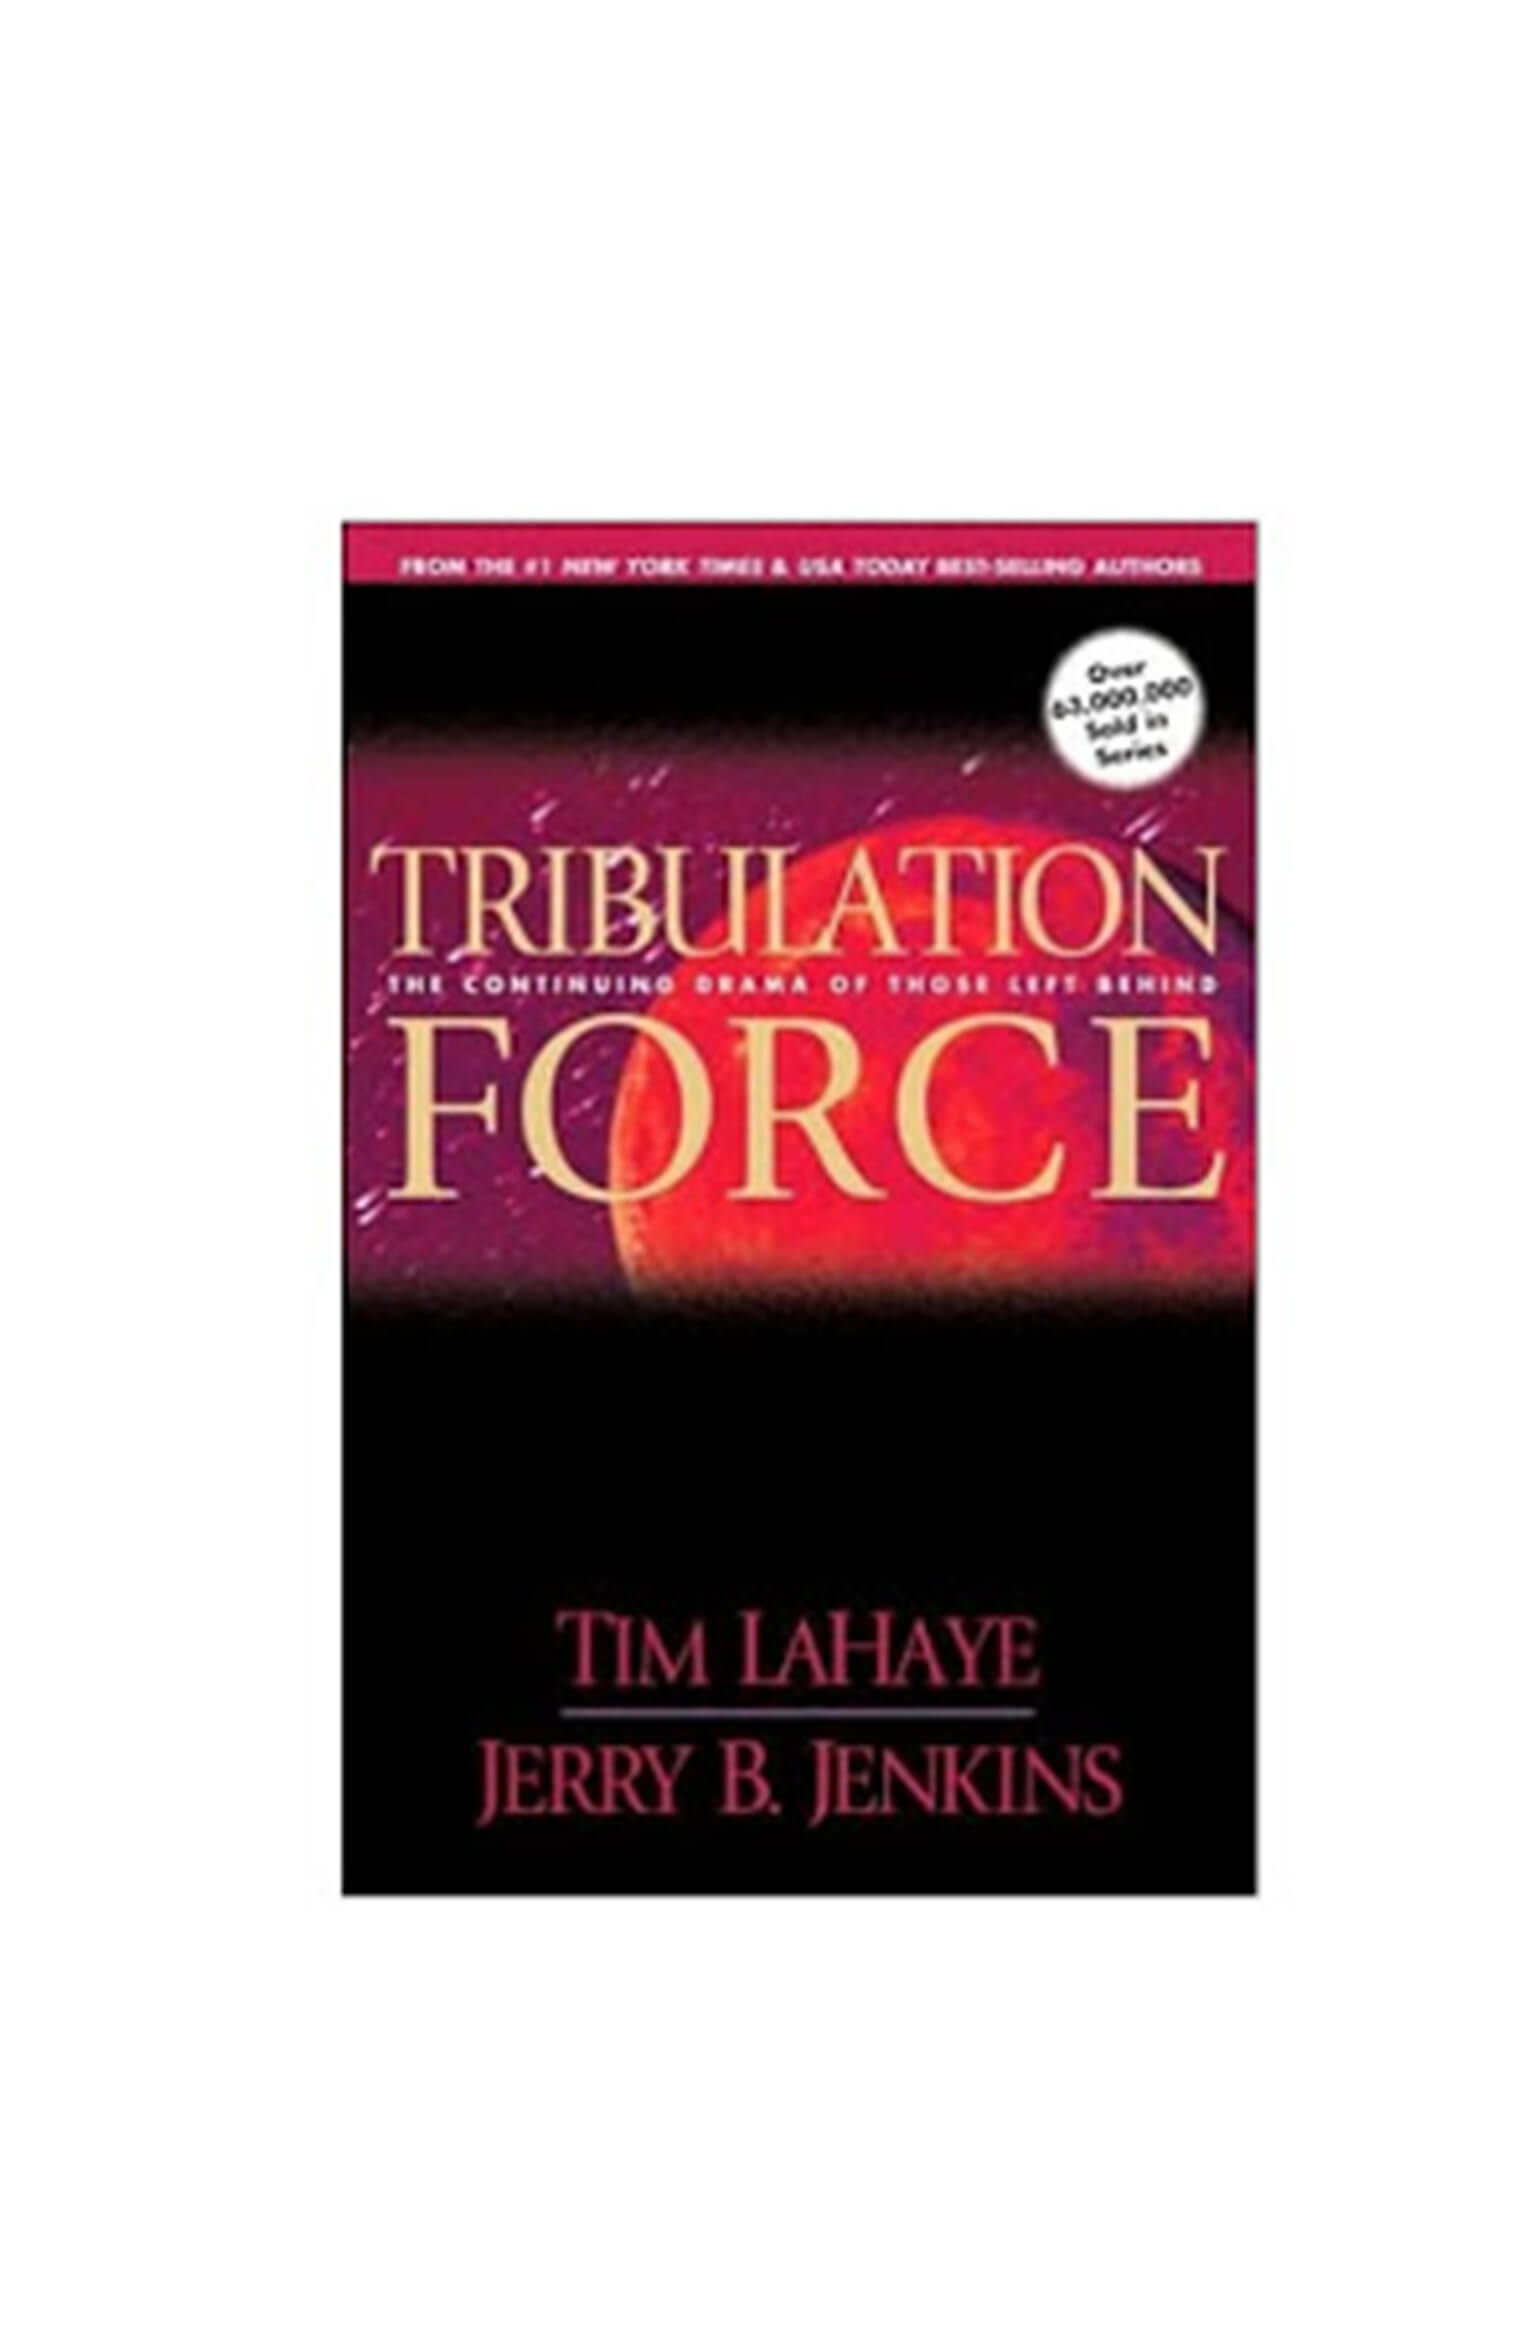 Tribulation Force Novel by Jerry B. Jenkins and Tim LaHaye